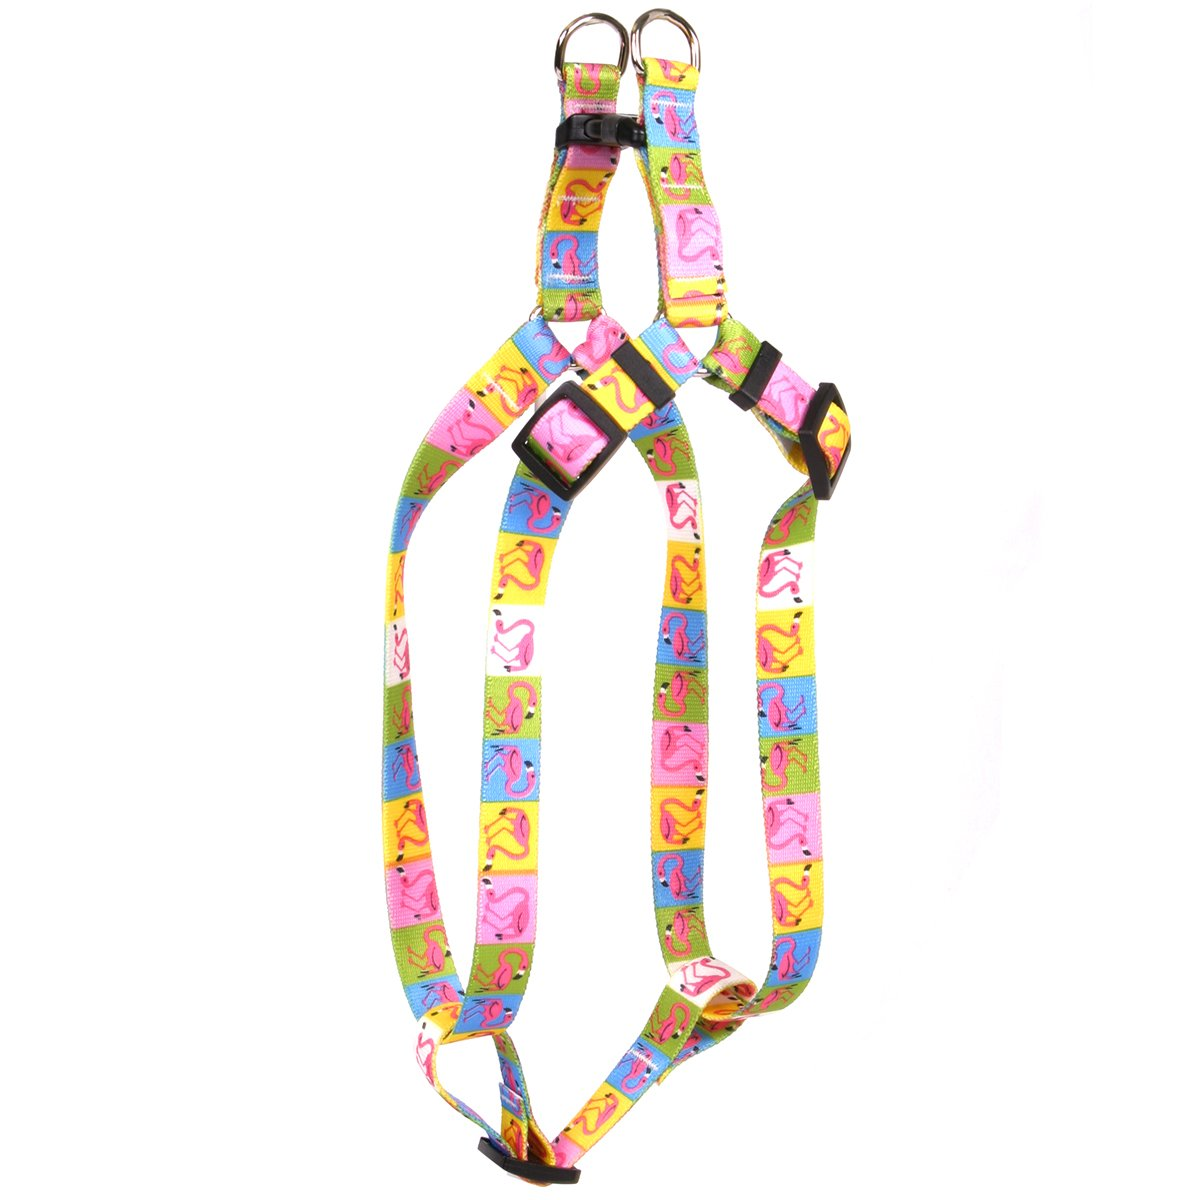 Yellow Dog Design Pink Flamingo Step-in Dog Harness, X-Small-3/8 Wide and fits Chest of 4.5 to 9''